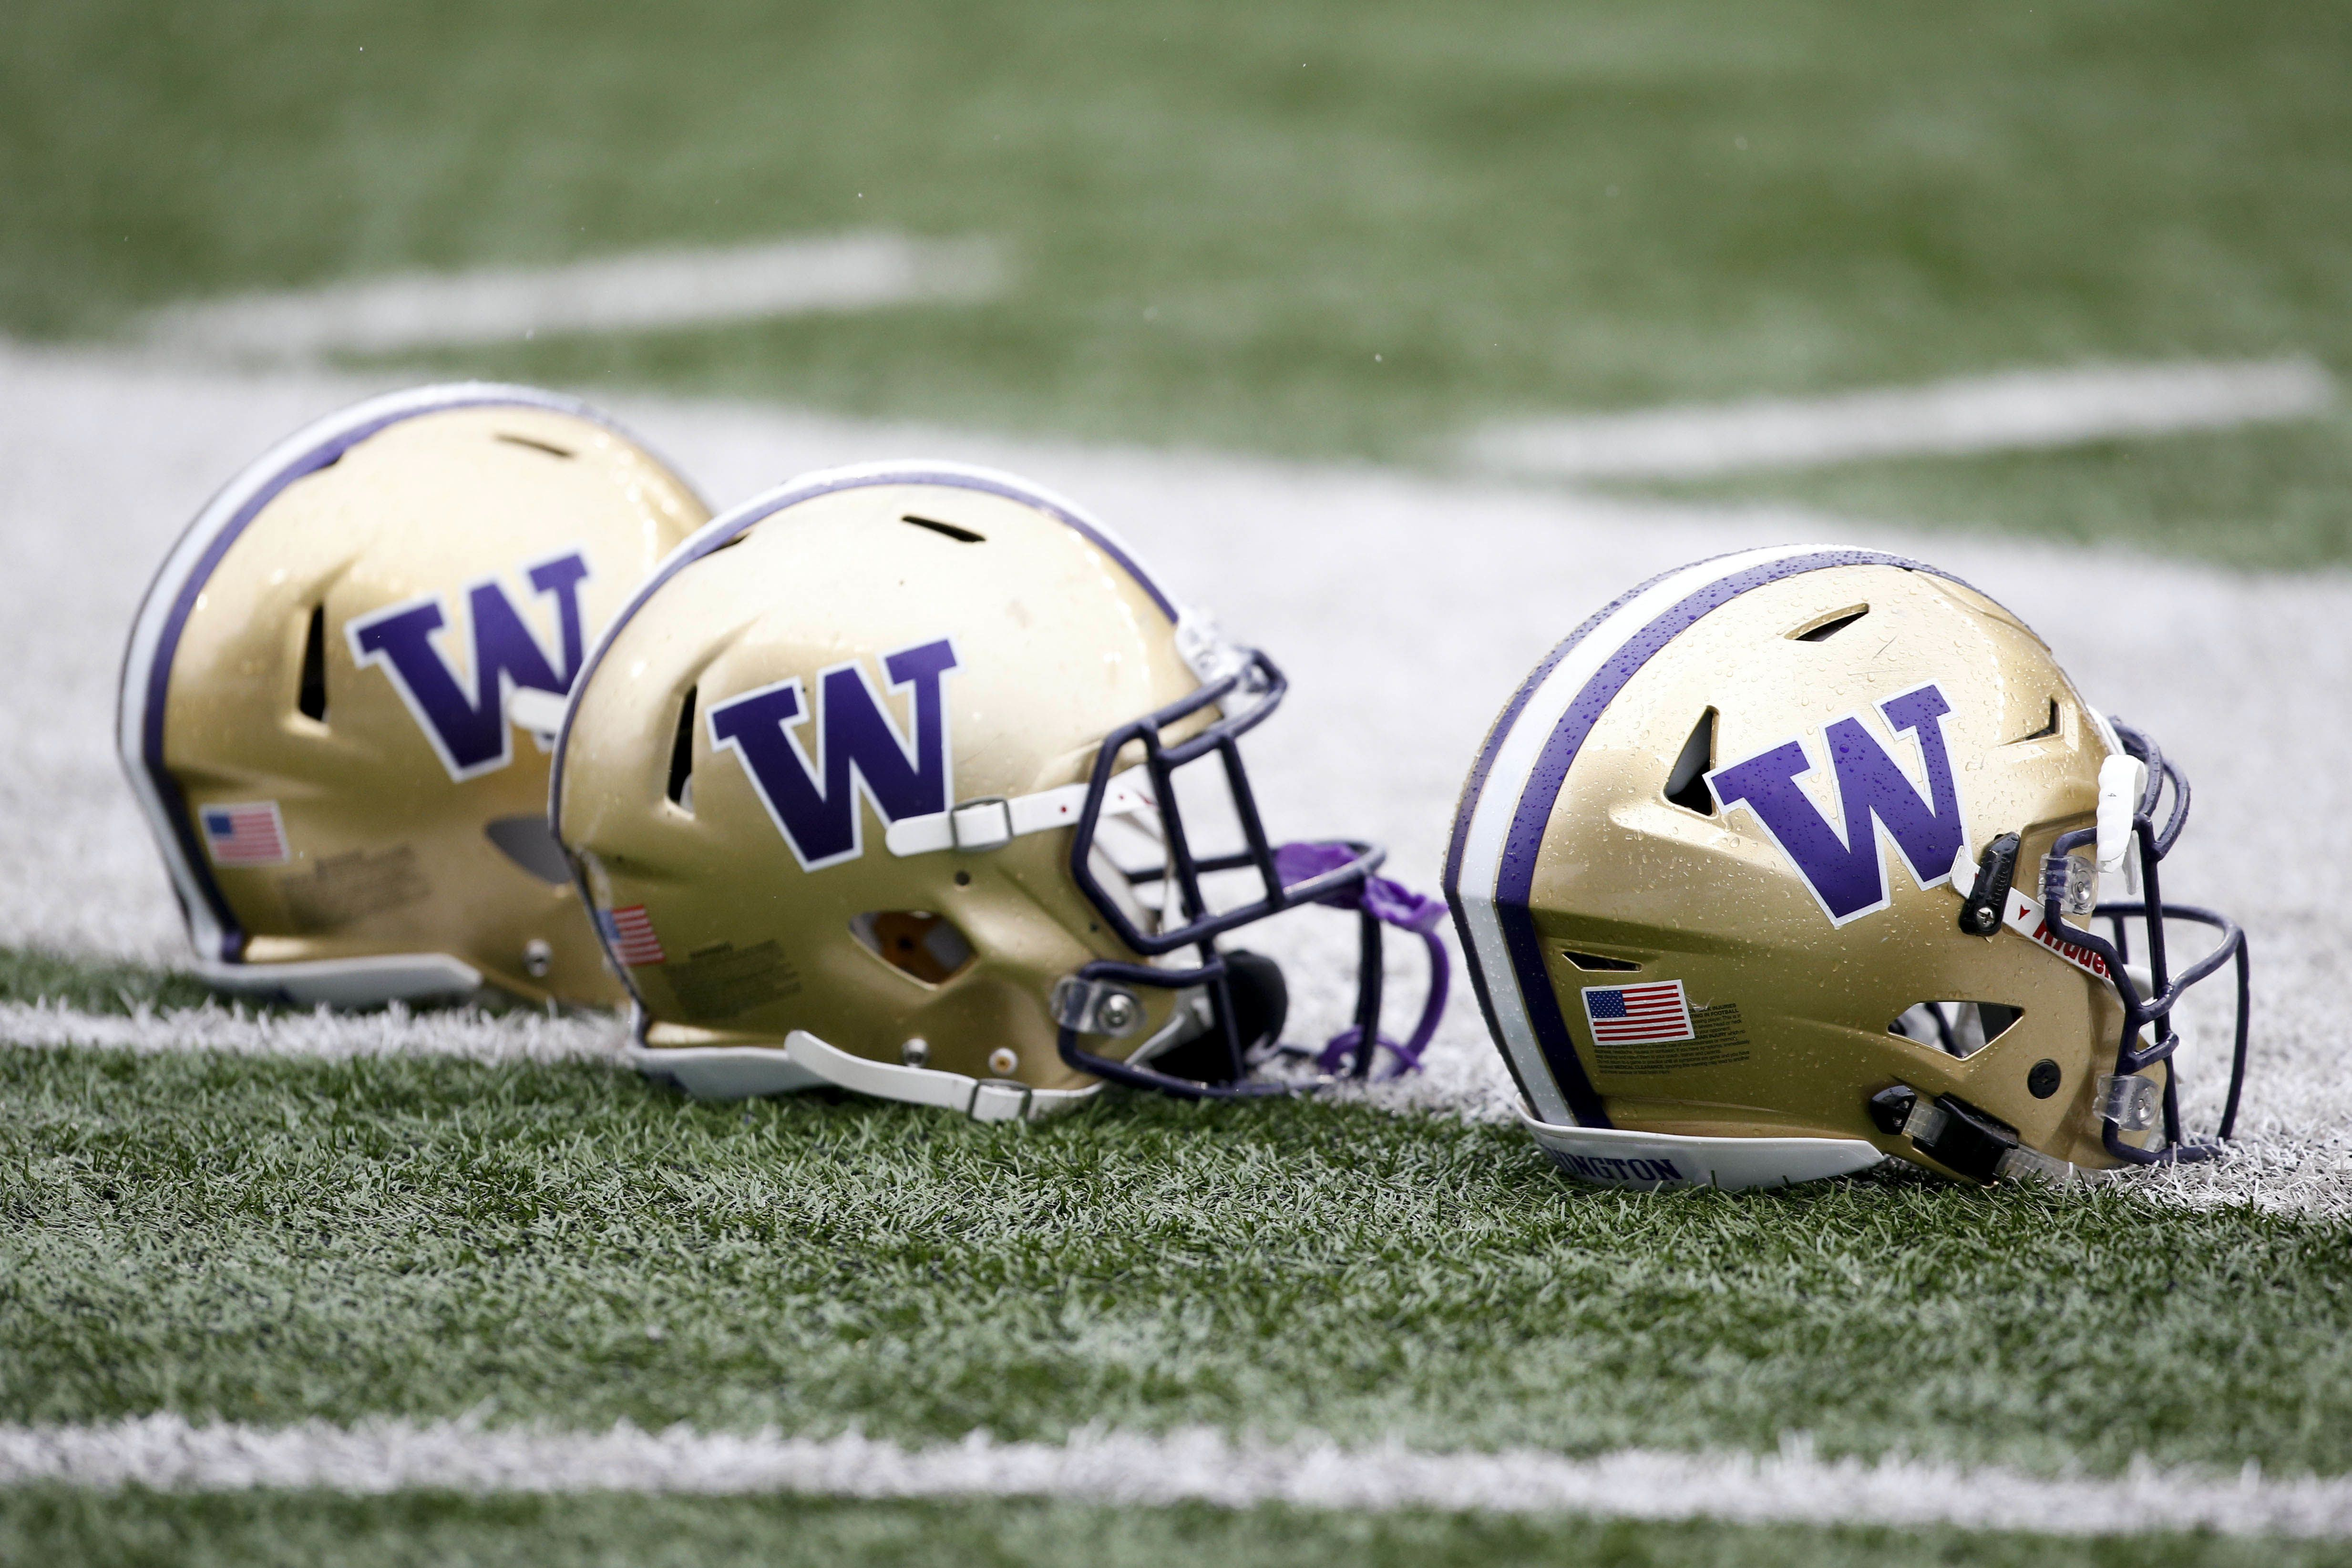 Husky Coaches talk about Returning to the Field